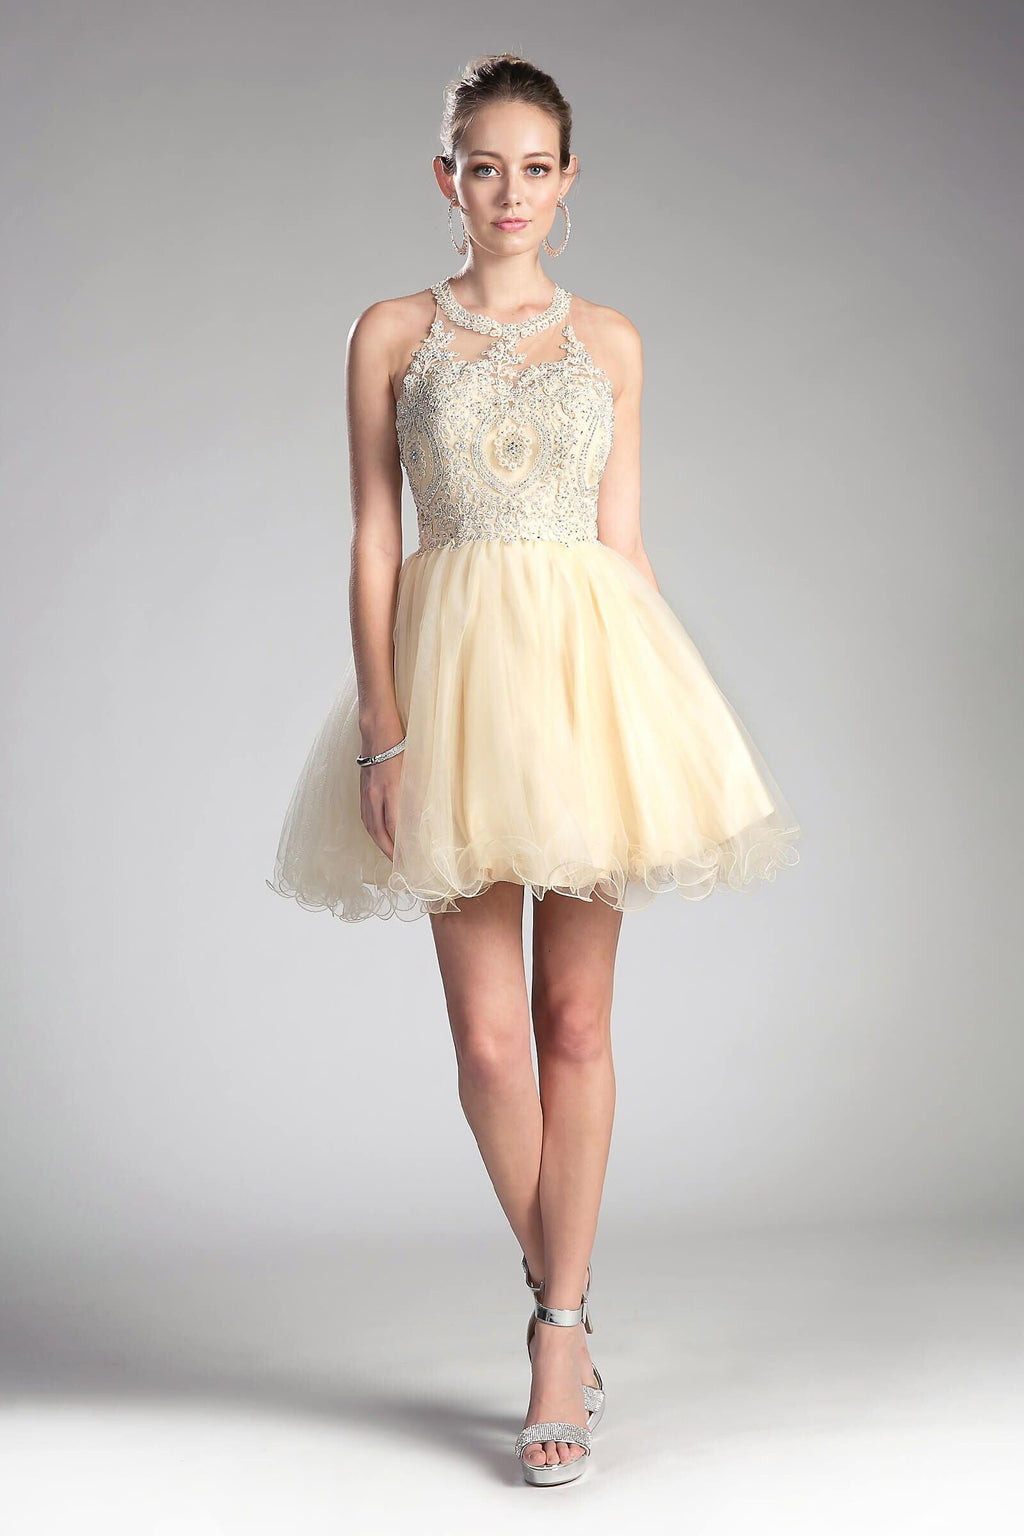 Short Prom Halter Neck Homecoming Dress - The Dress Outlet Champagne May Queen